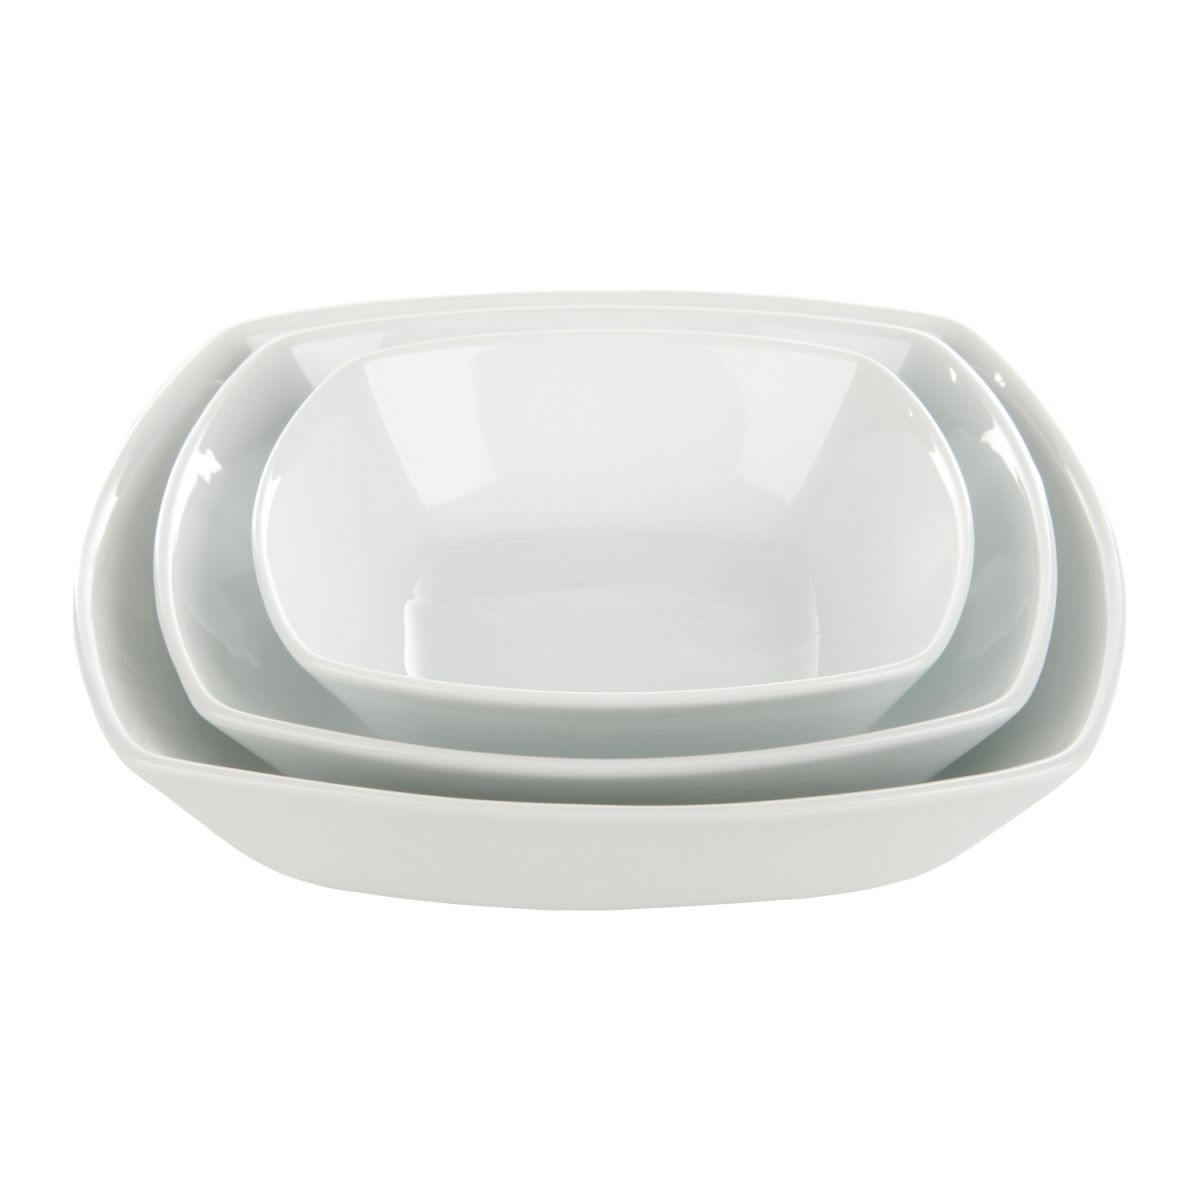 bowl salad square 20x20x5 cm box6